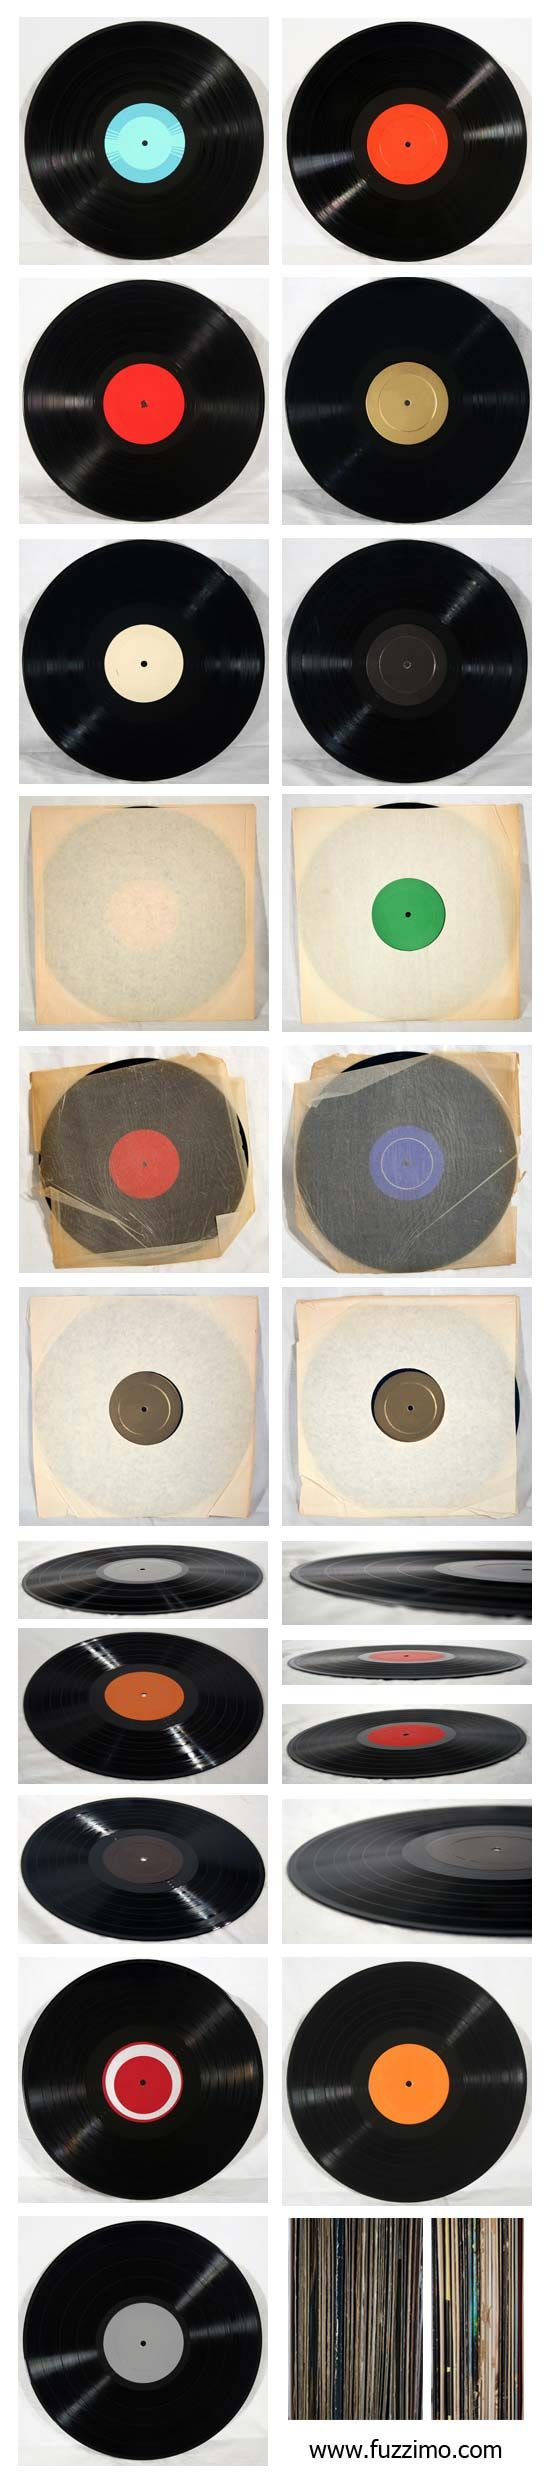 Vinyl Records Pictures , Fuzzimo: Lots of free downloads! (Old letters, Cassette tapes, old Book textures, Old Envelopes...etc!:)